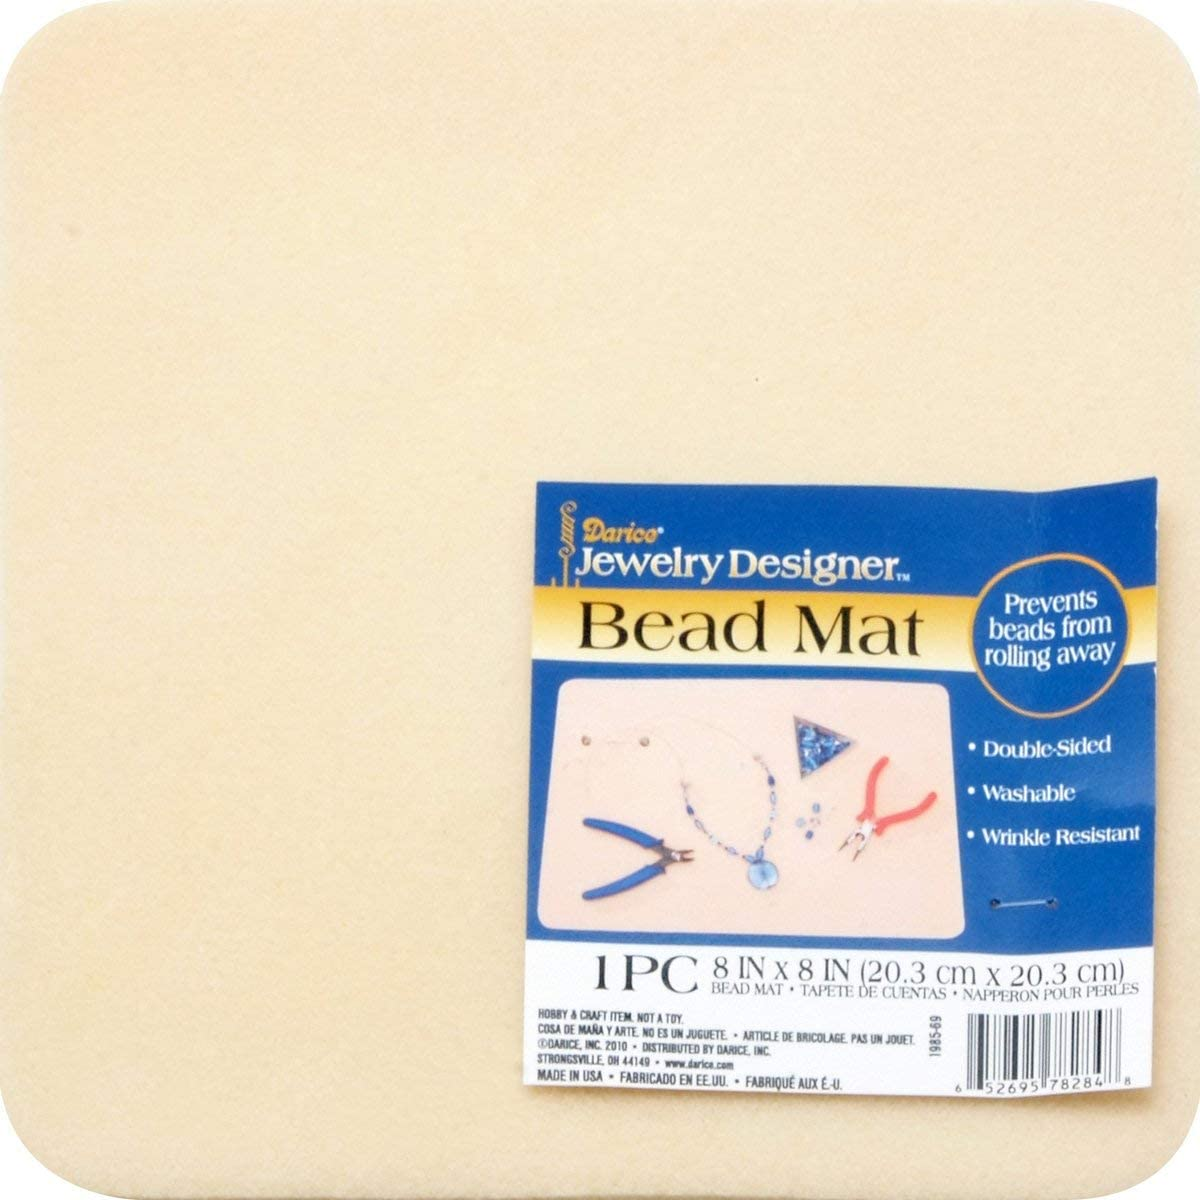 Sticky Bead Mat Product Dimensions 1 x 8 x 11 inches